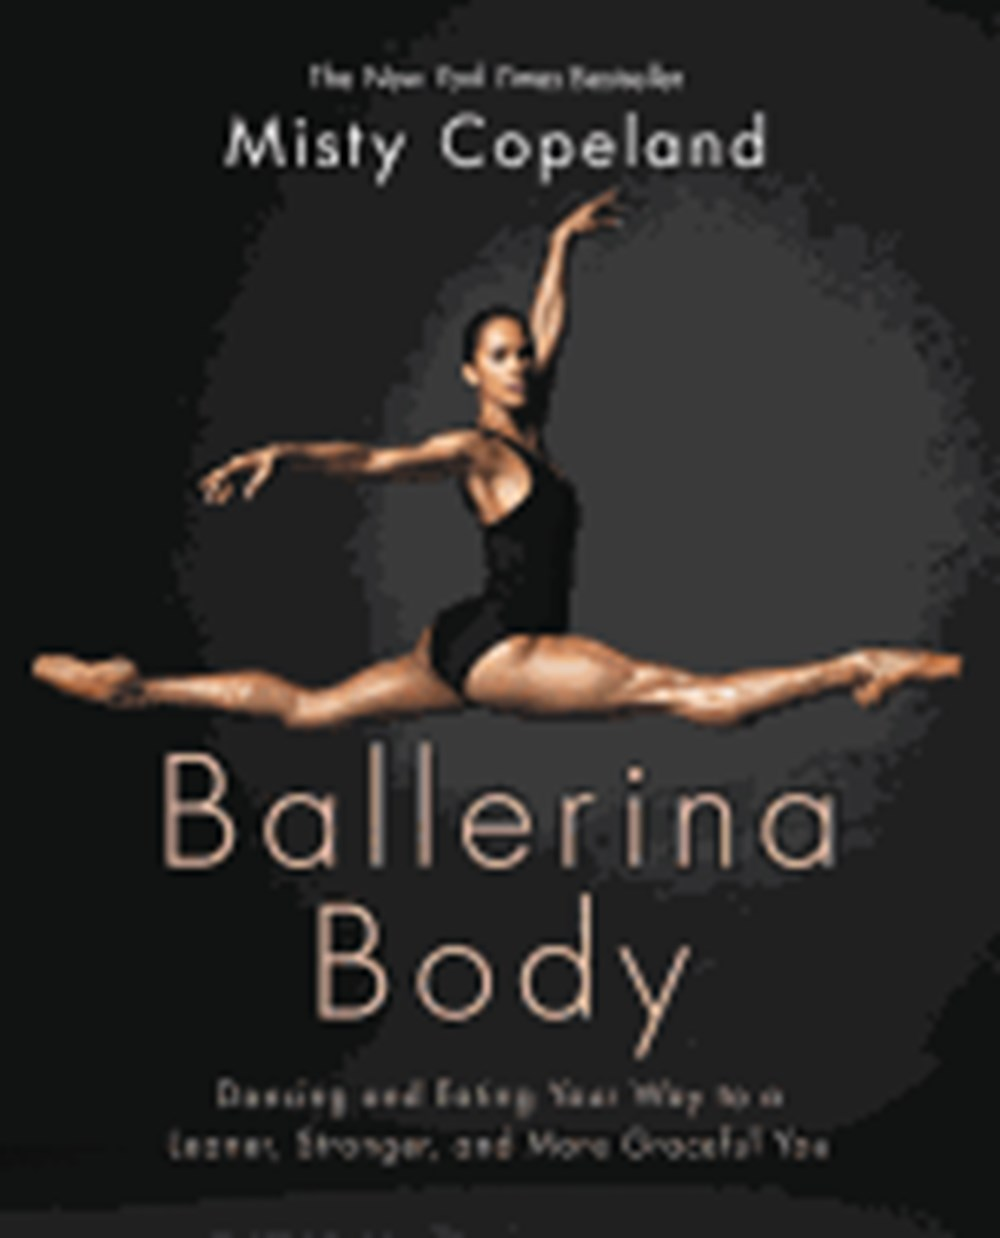 Ballerina Body Dancing and Eating Your Way to a Leaner, Stronger, and More Graceful You